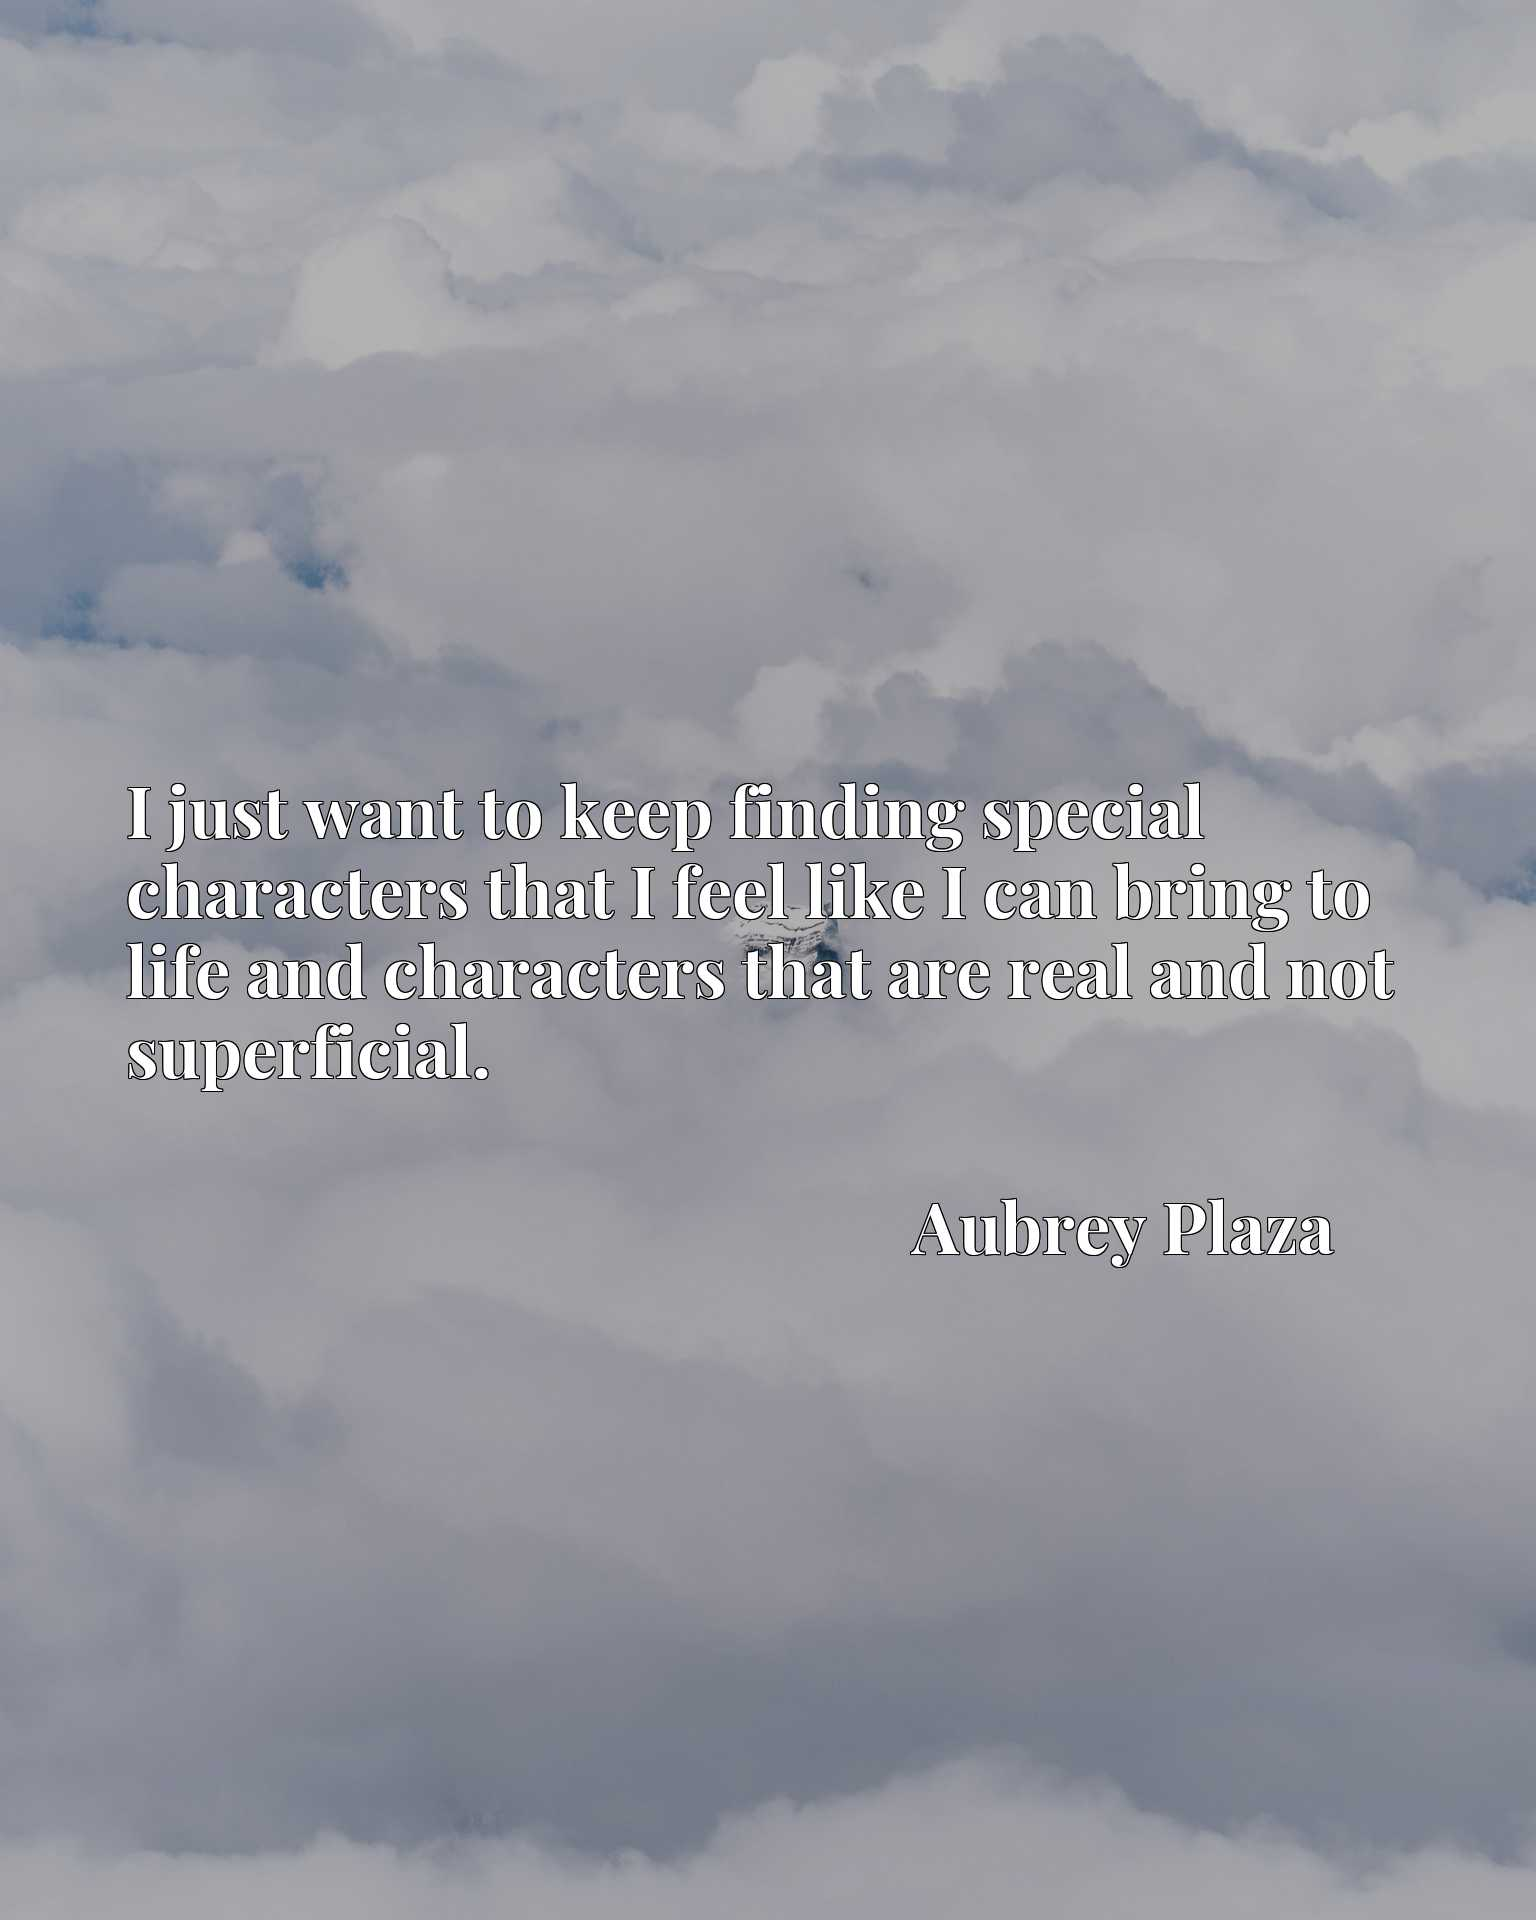 I just want to keep finding special characters that I feel like I can bring to life and characters that are real and not superficial.